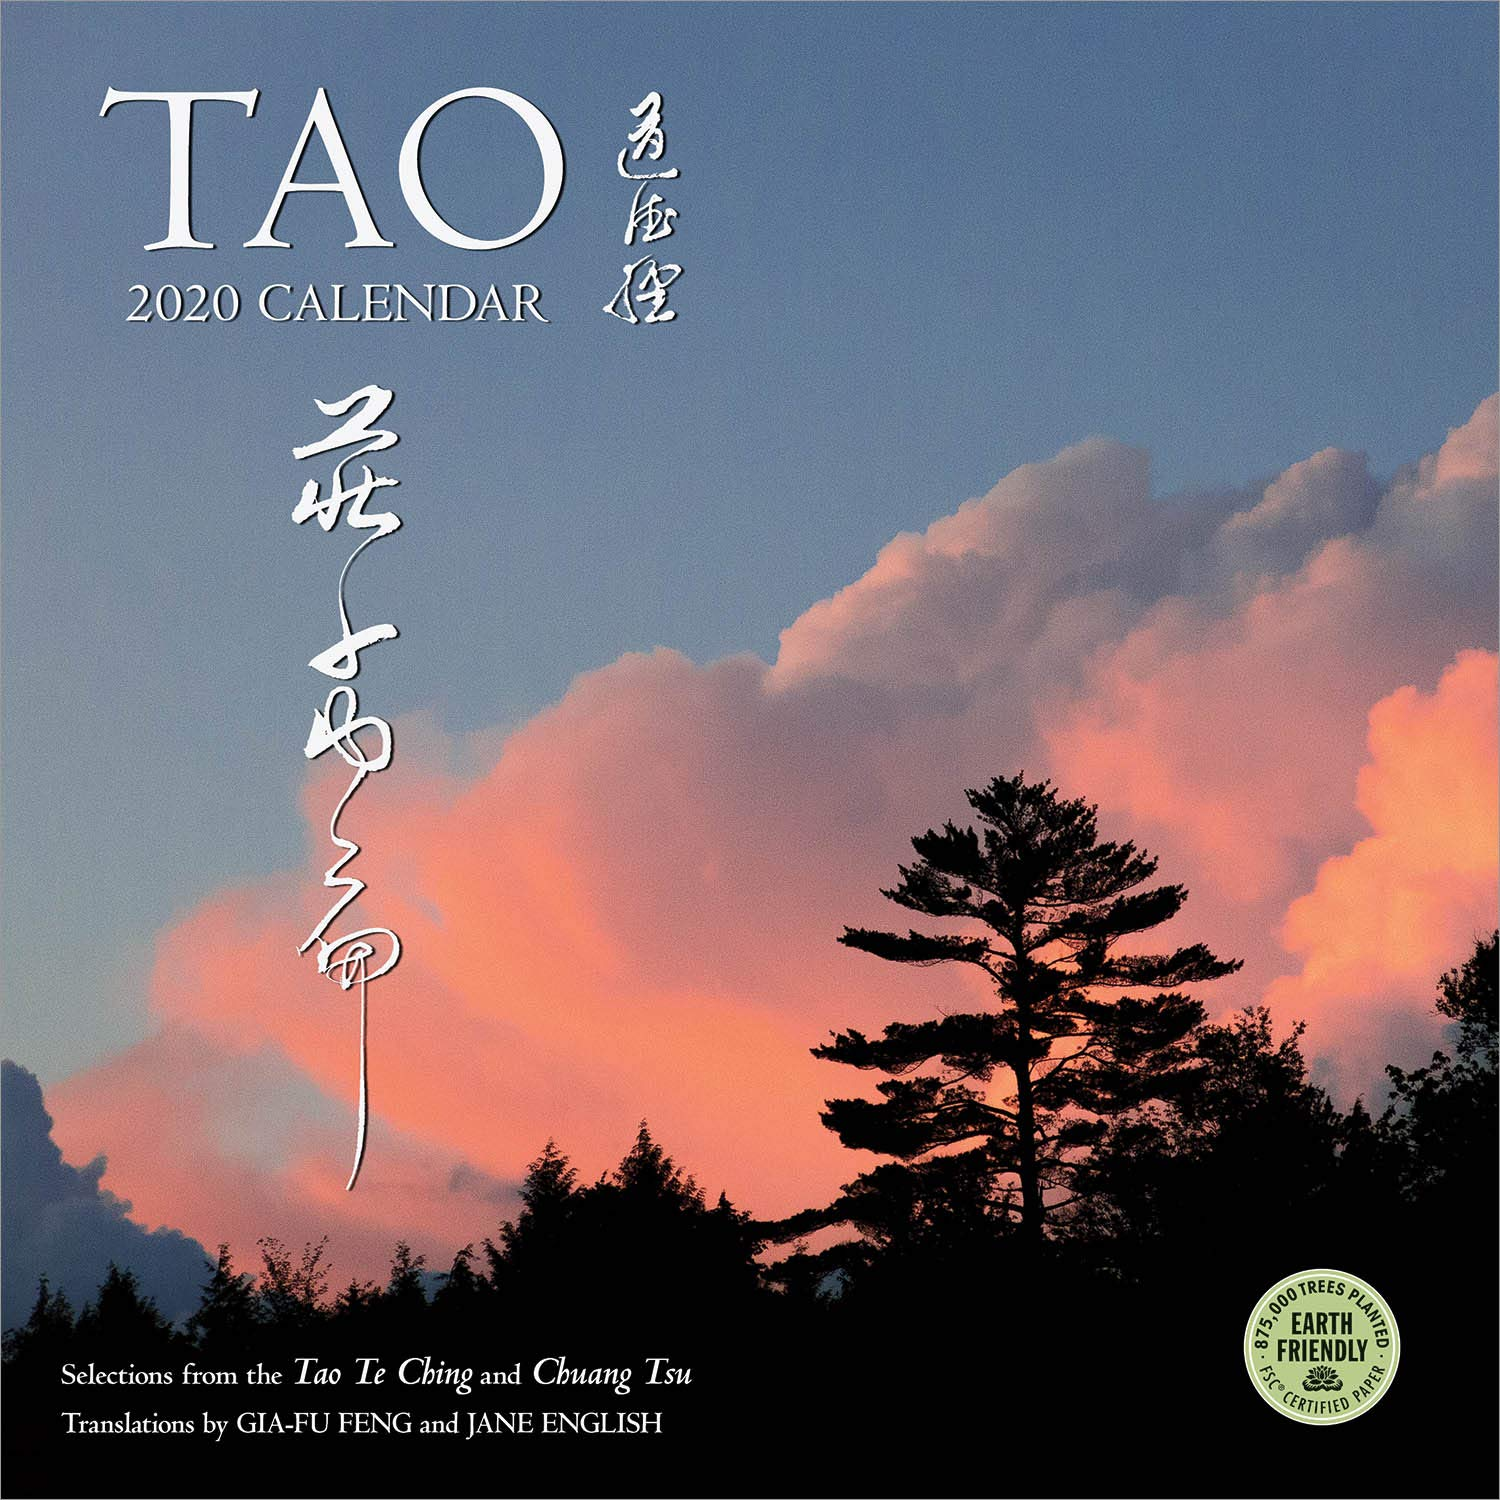 tao 2019 wall calendar selections from the tao te ching and chuang tsu inner chapters